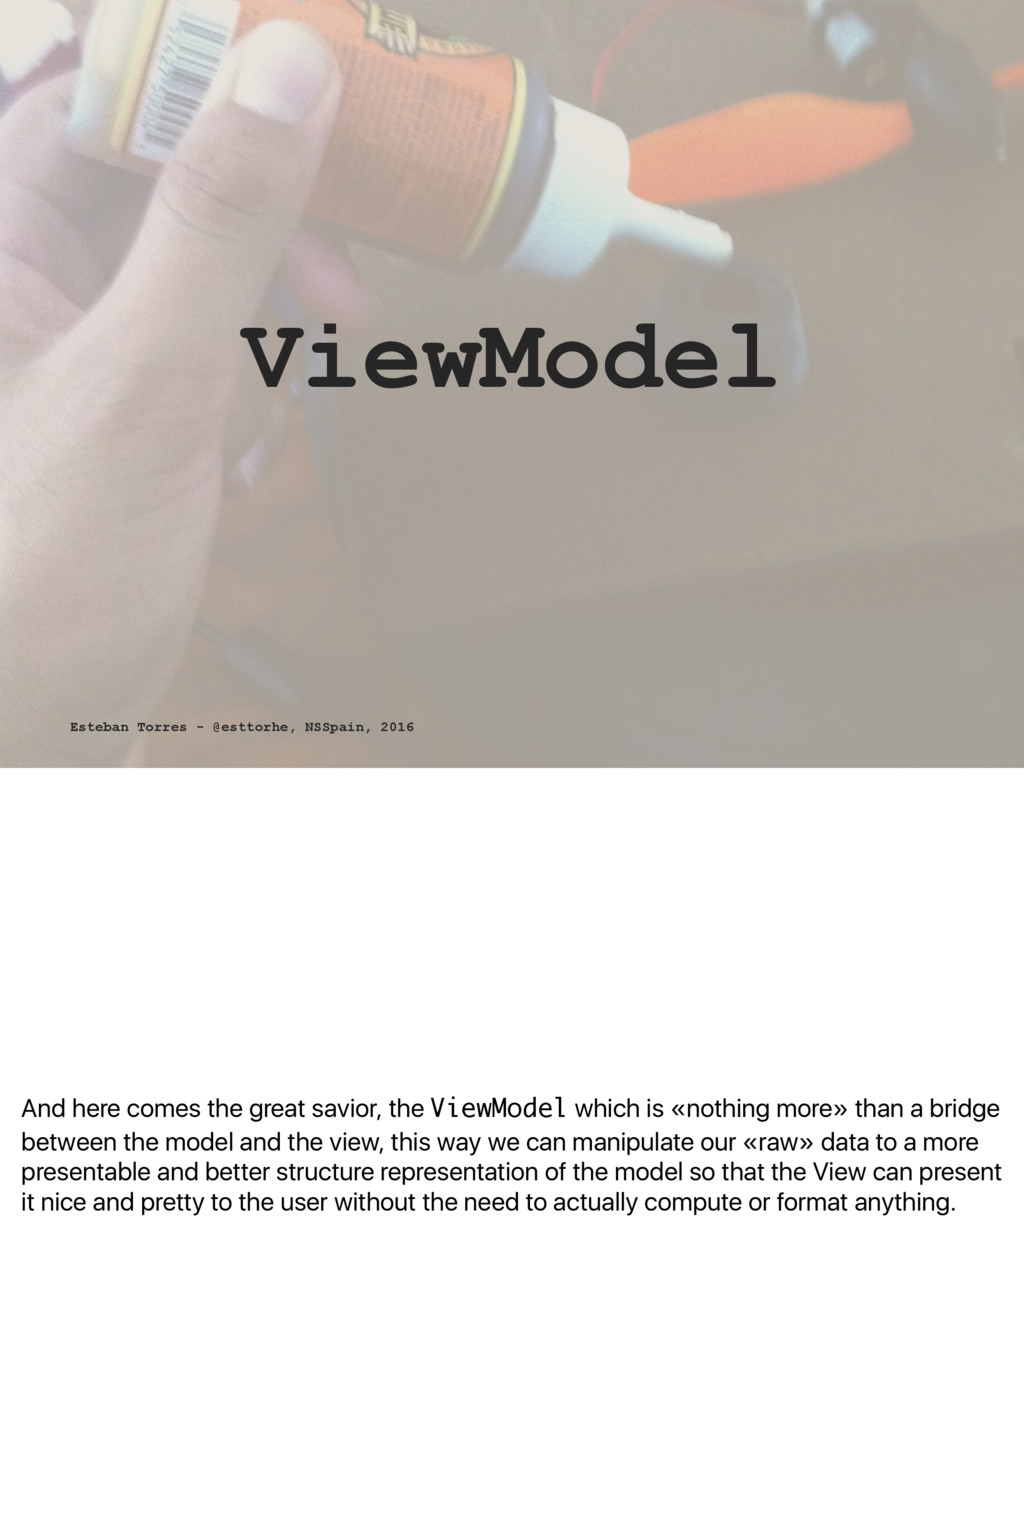 And here comes the great savior, the ViewModel ...